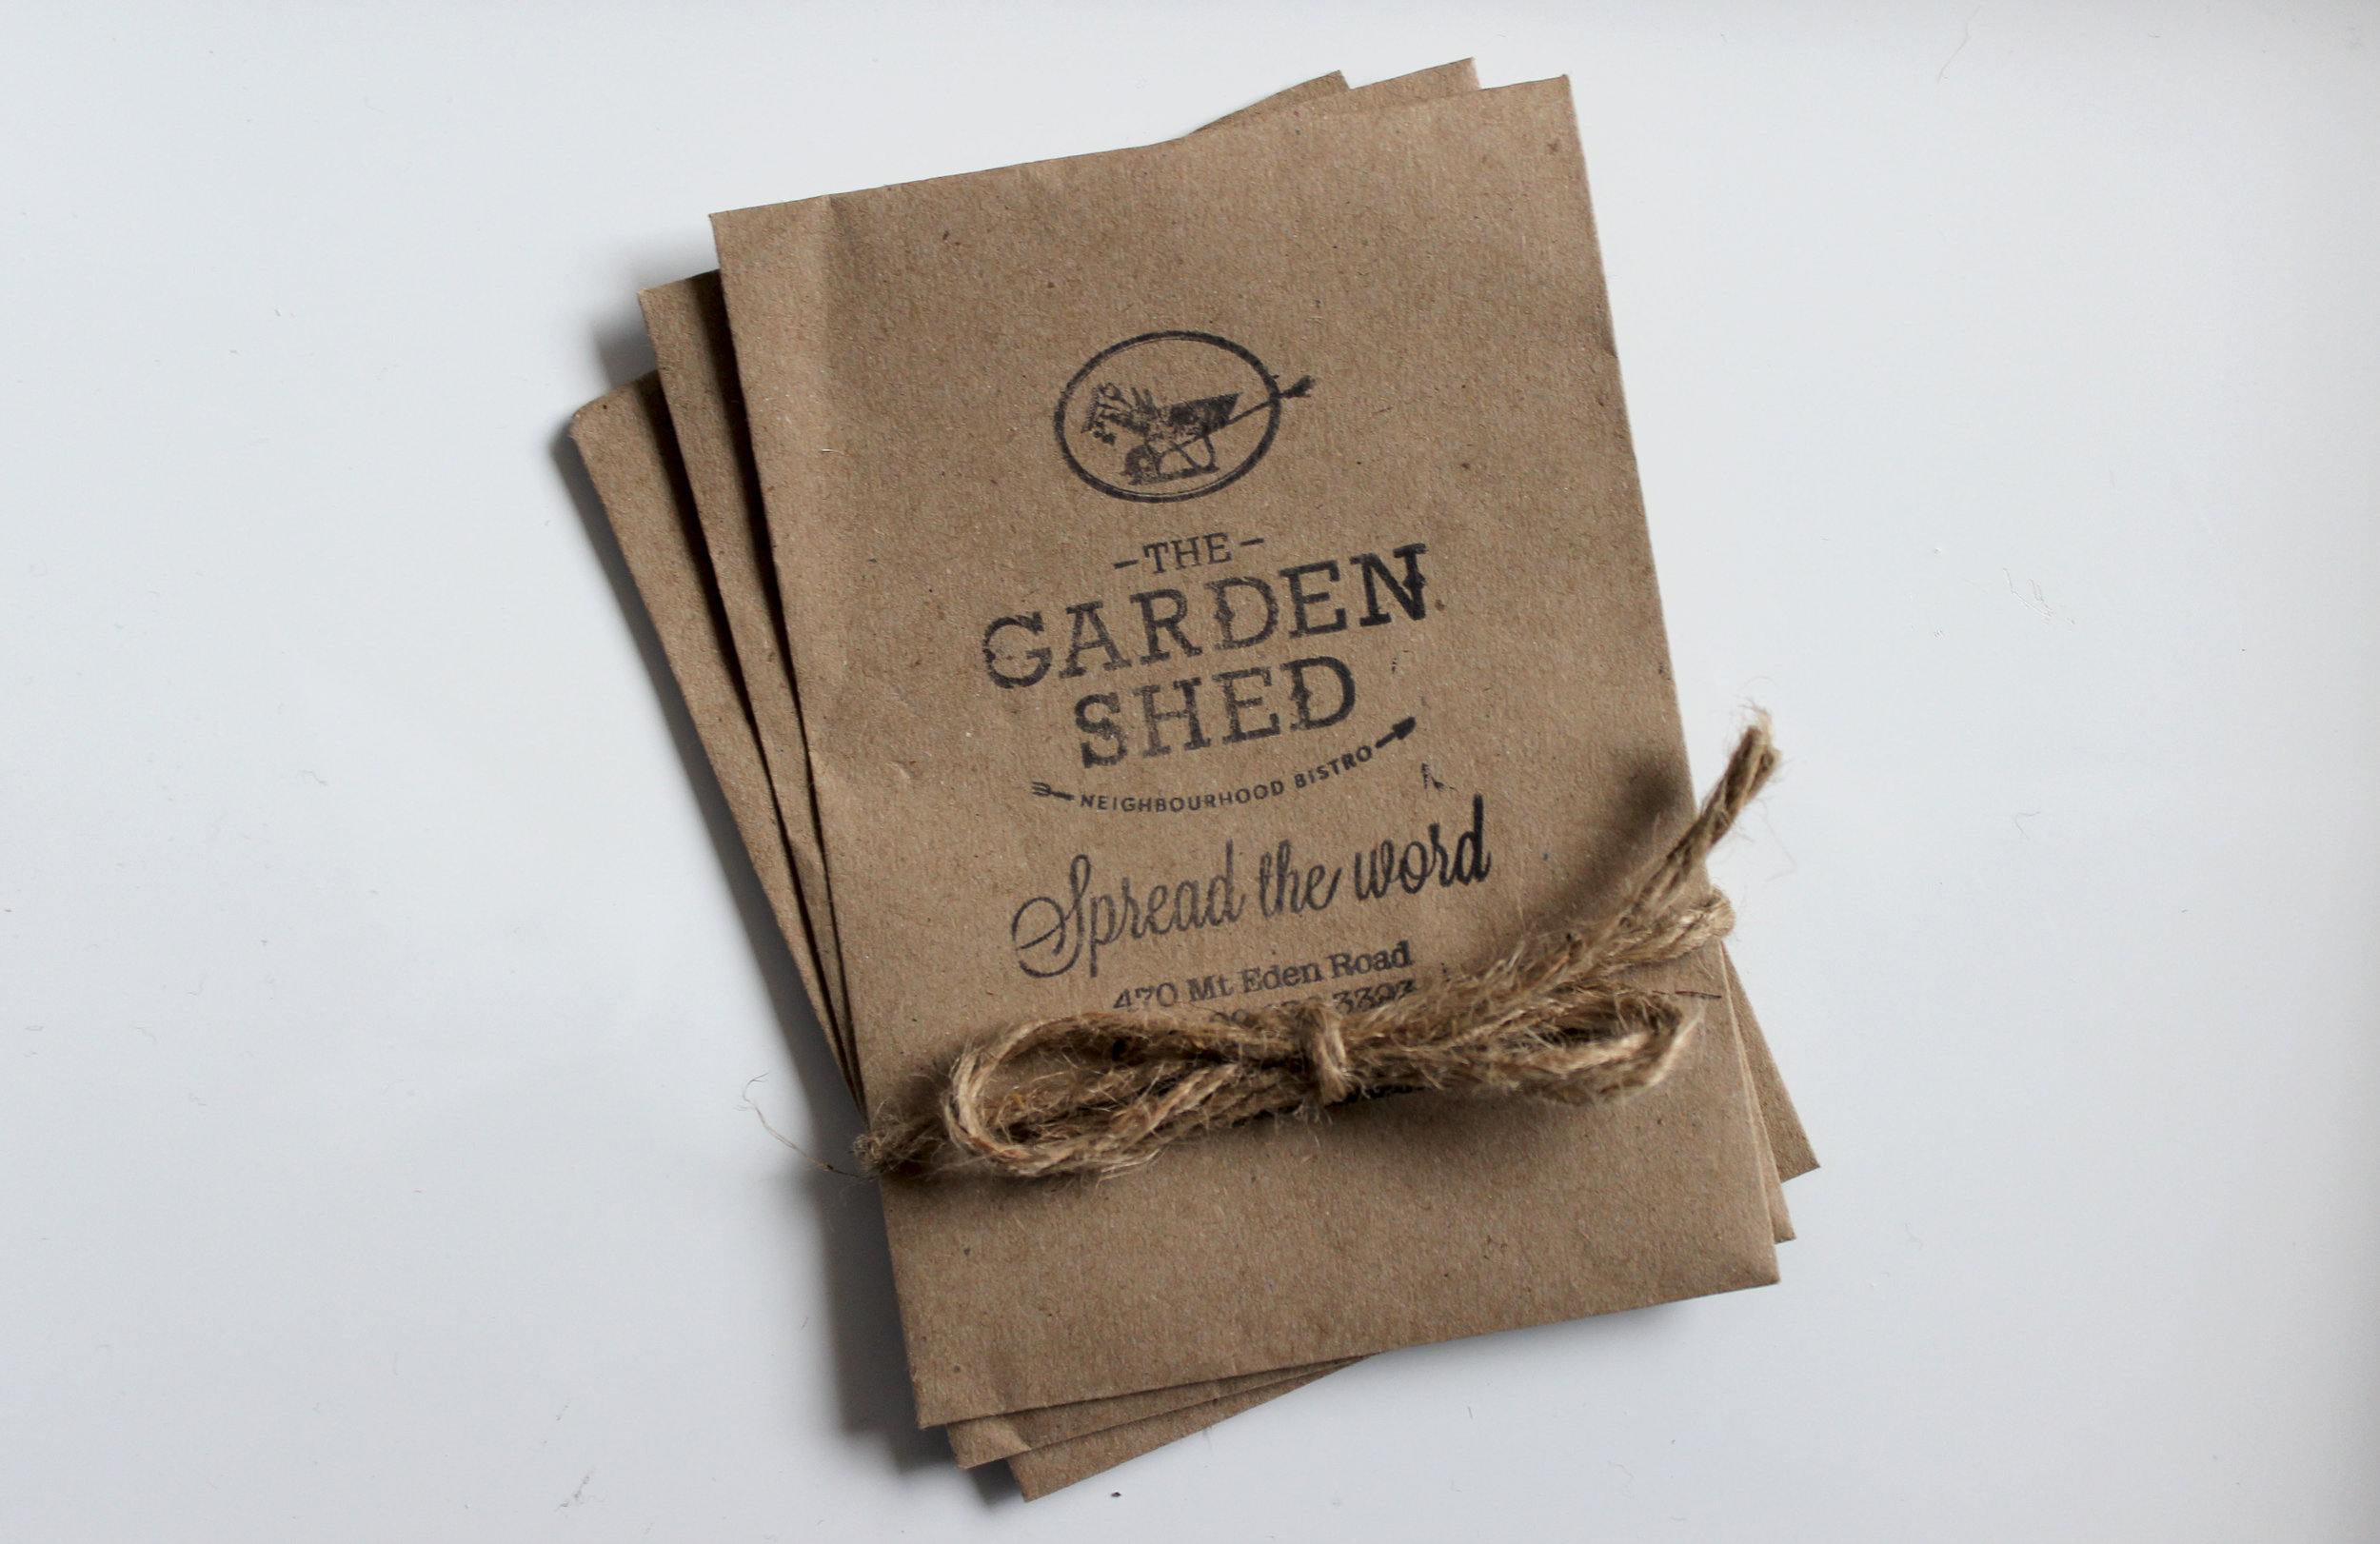 The Garden Shed Seeds | EmmaLouisa.com